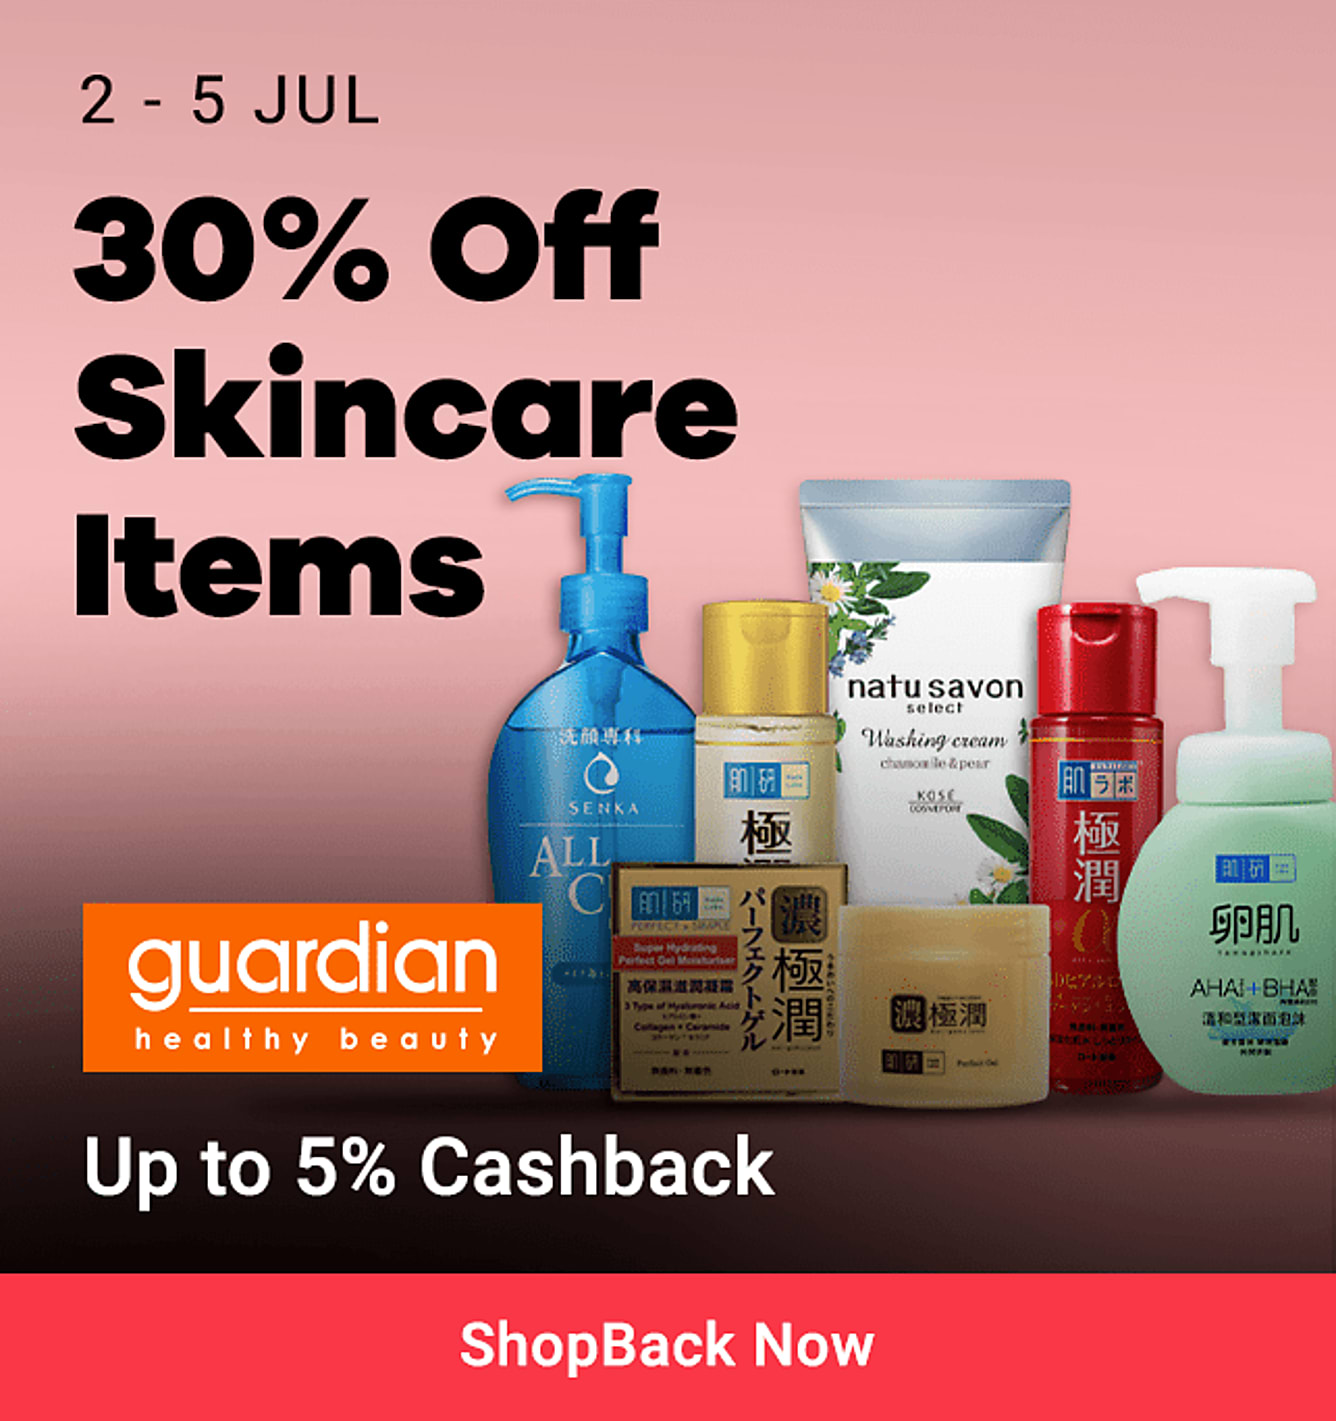 guardian 30% off skincare items